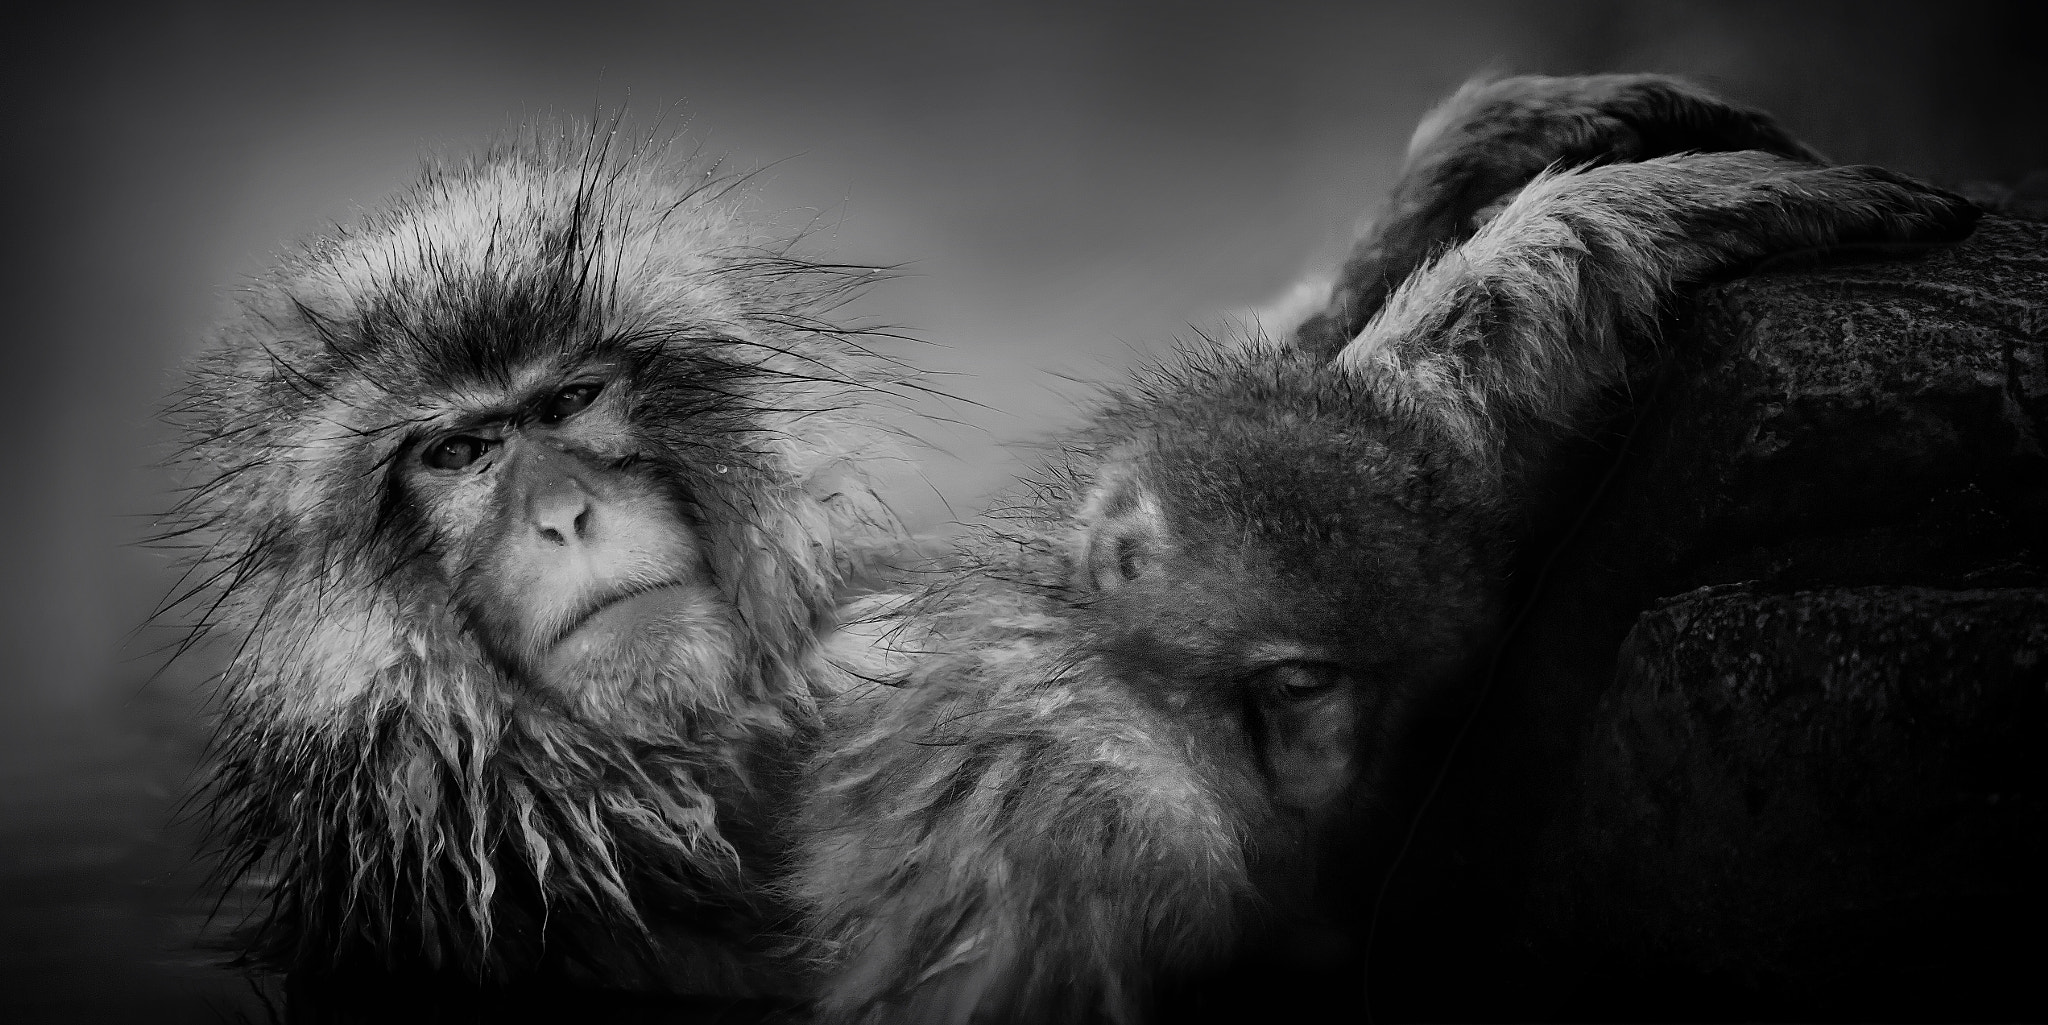 Photograph Snow Monkey by Oat Vaiyaboon on 500px